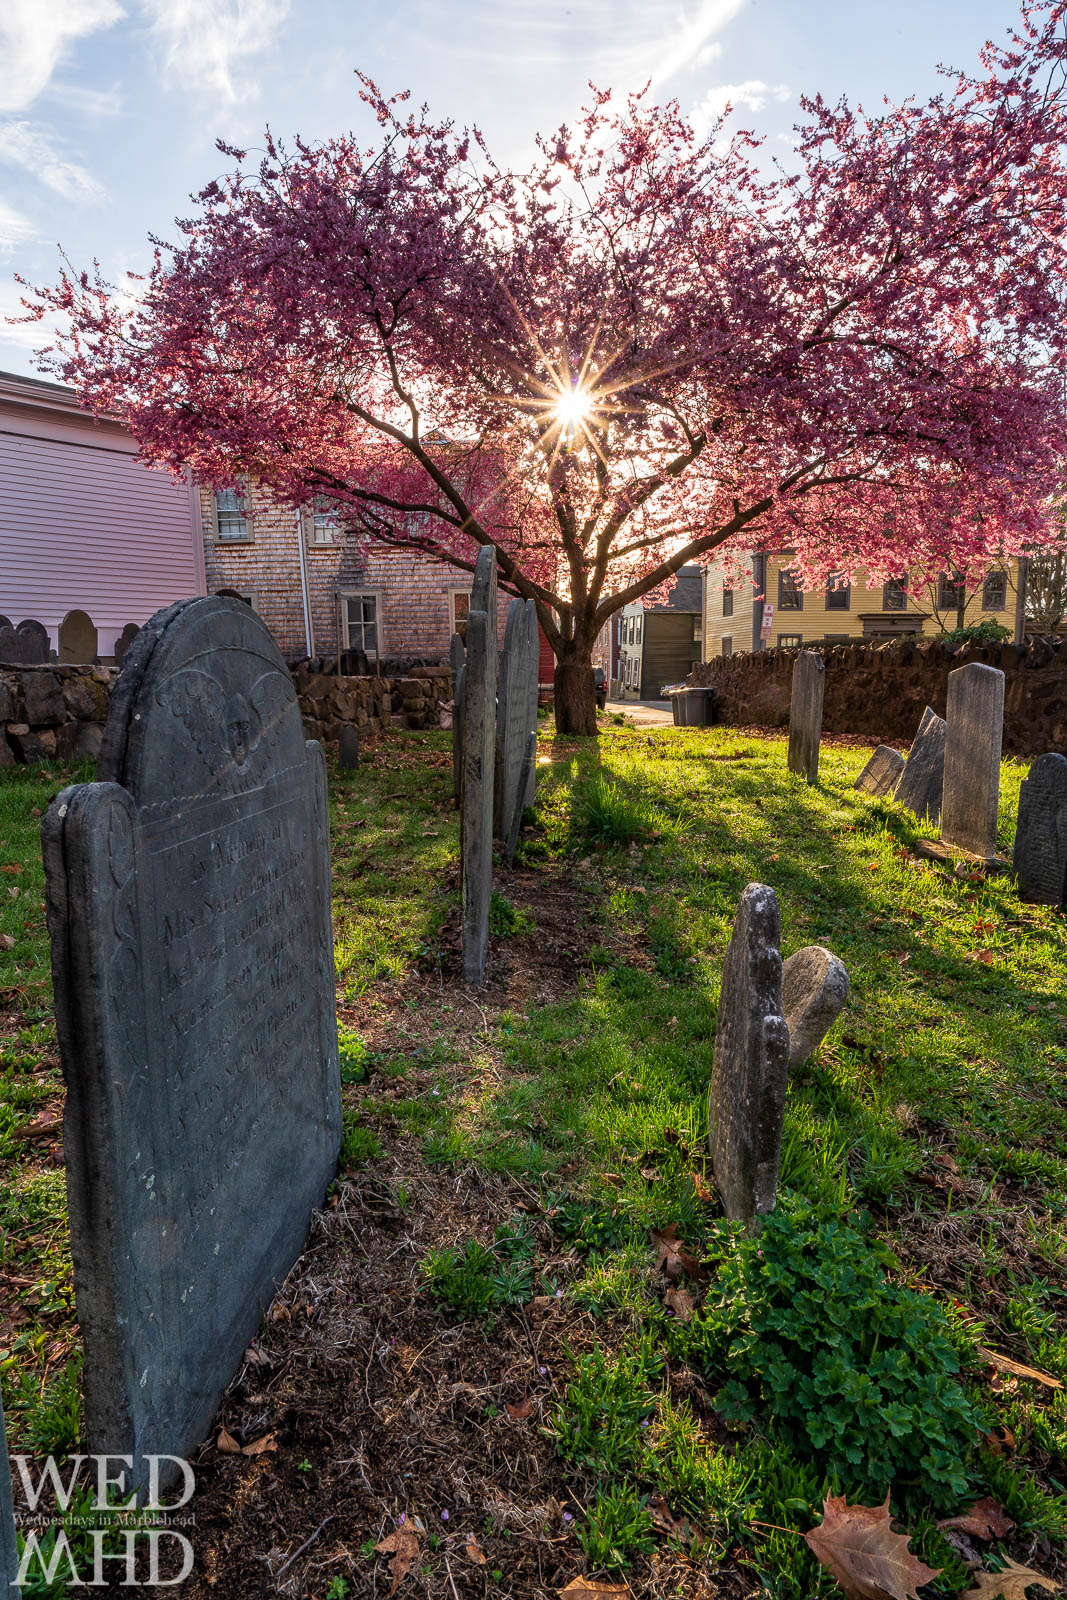 The sun is captured in a burst of light shining through the blossoms at the Harris Street cemetery